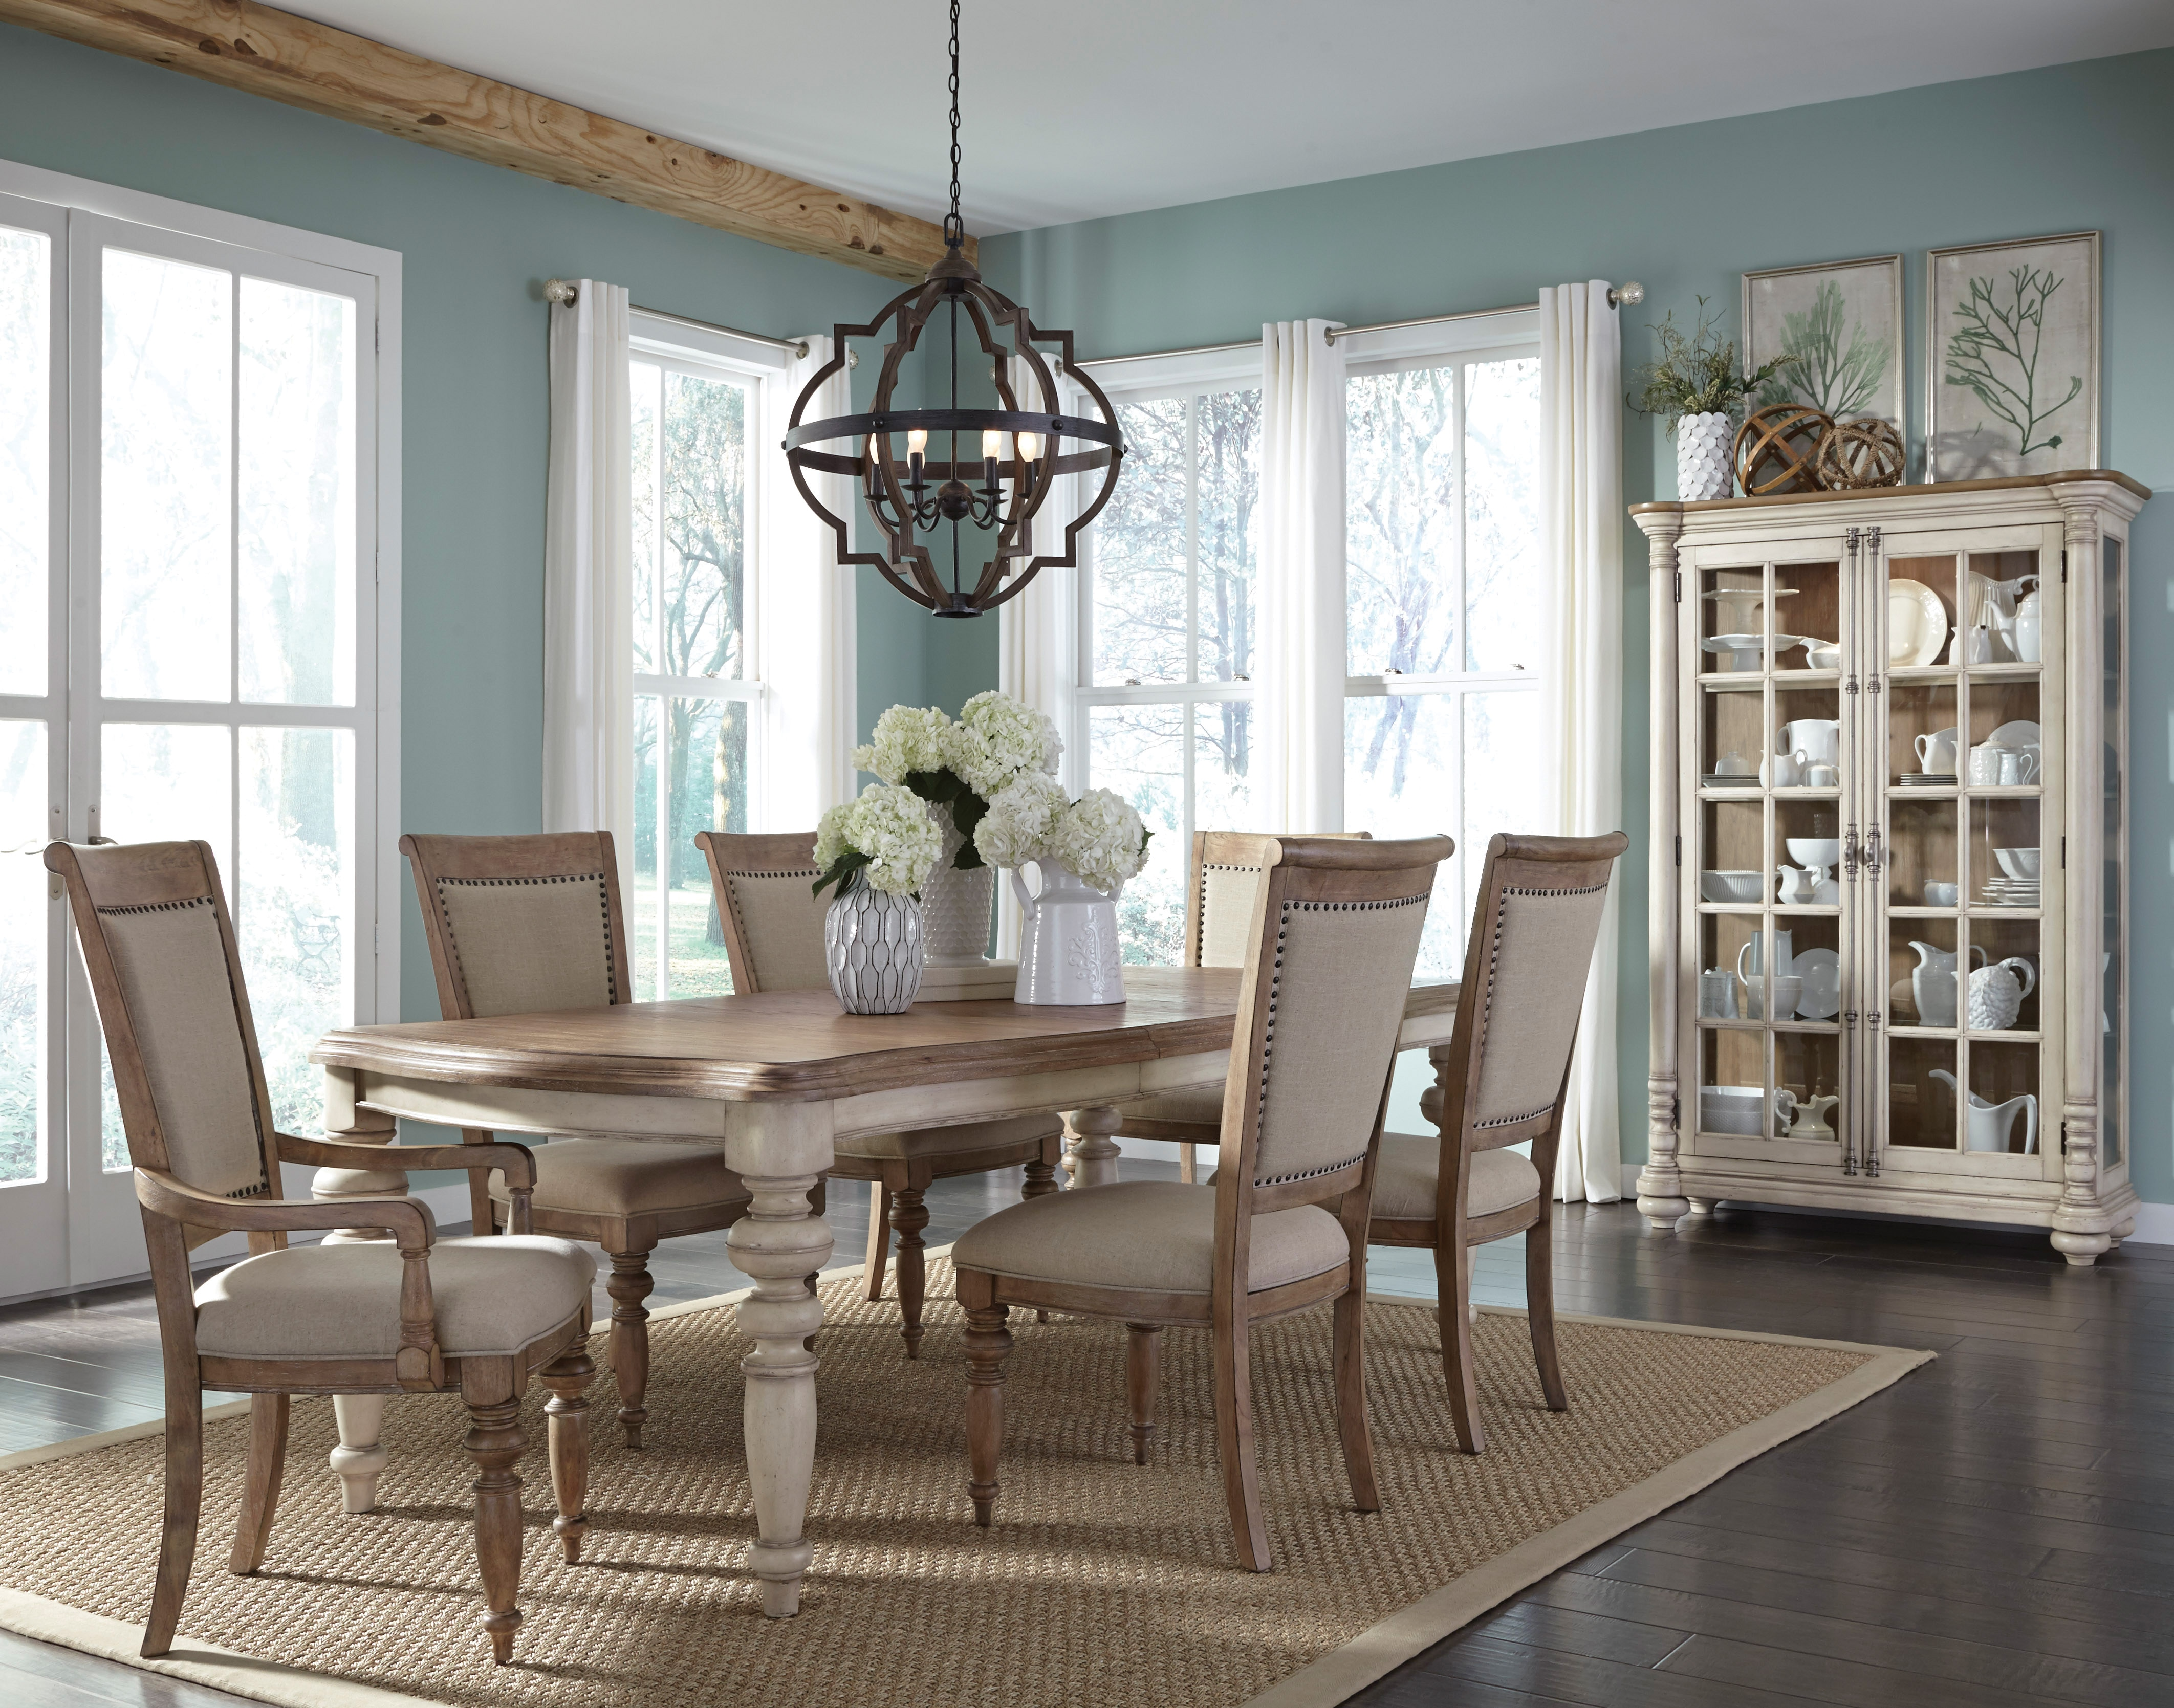 The Willow Springs Dining Collection